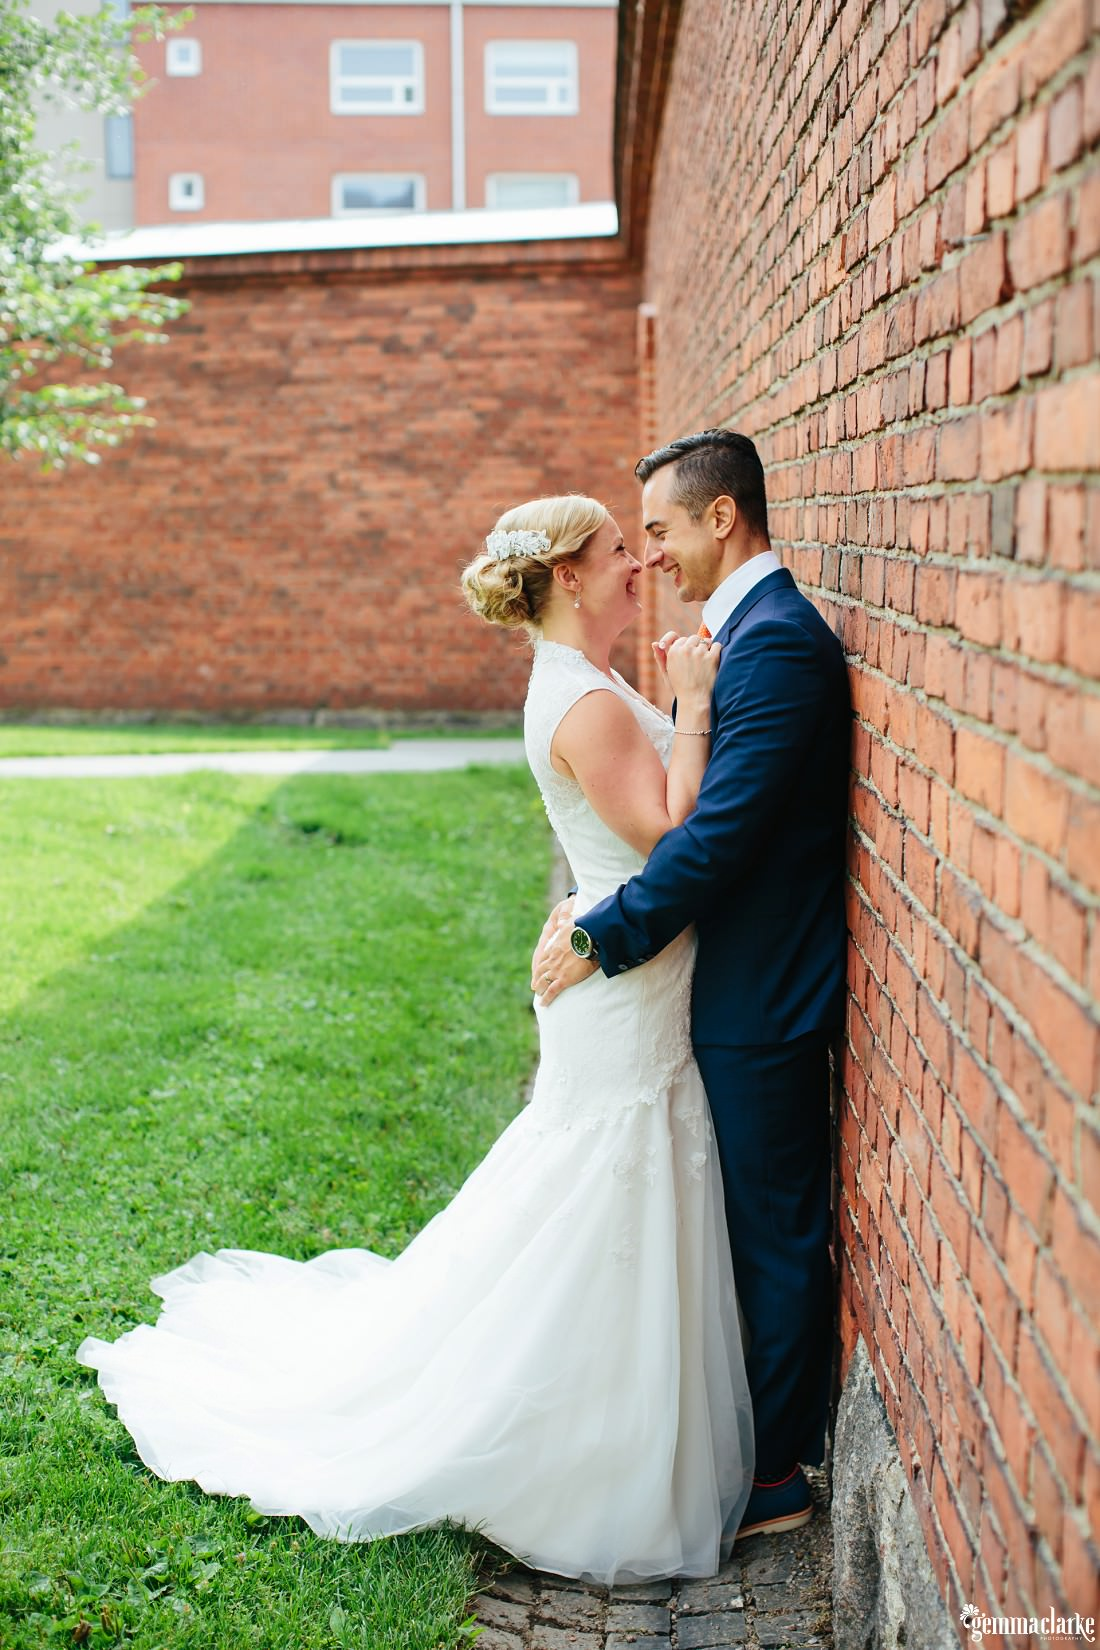 A bride and groom holding each other close against a brick wall